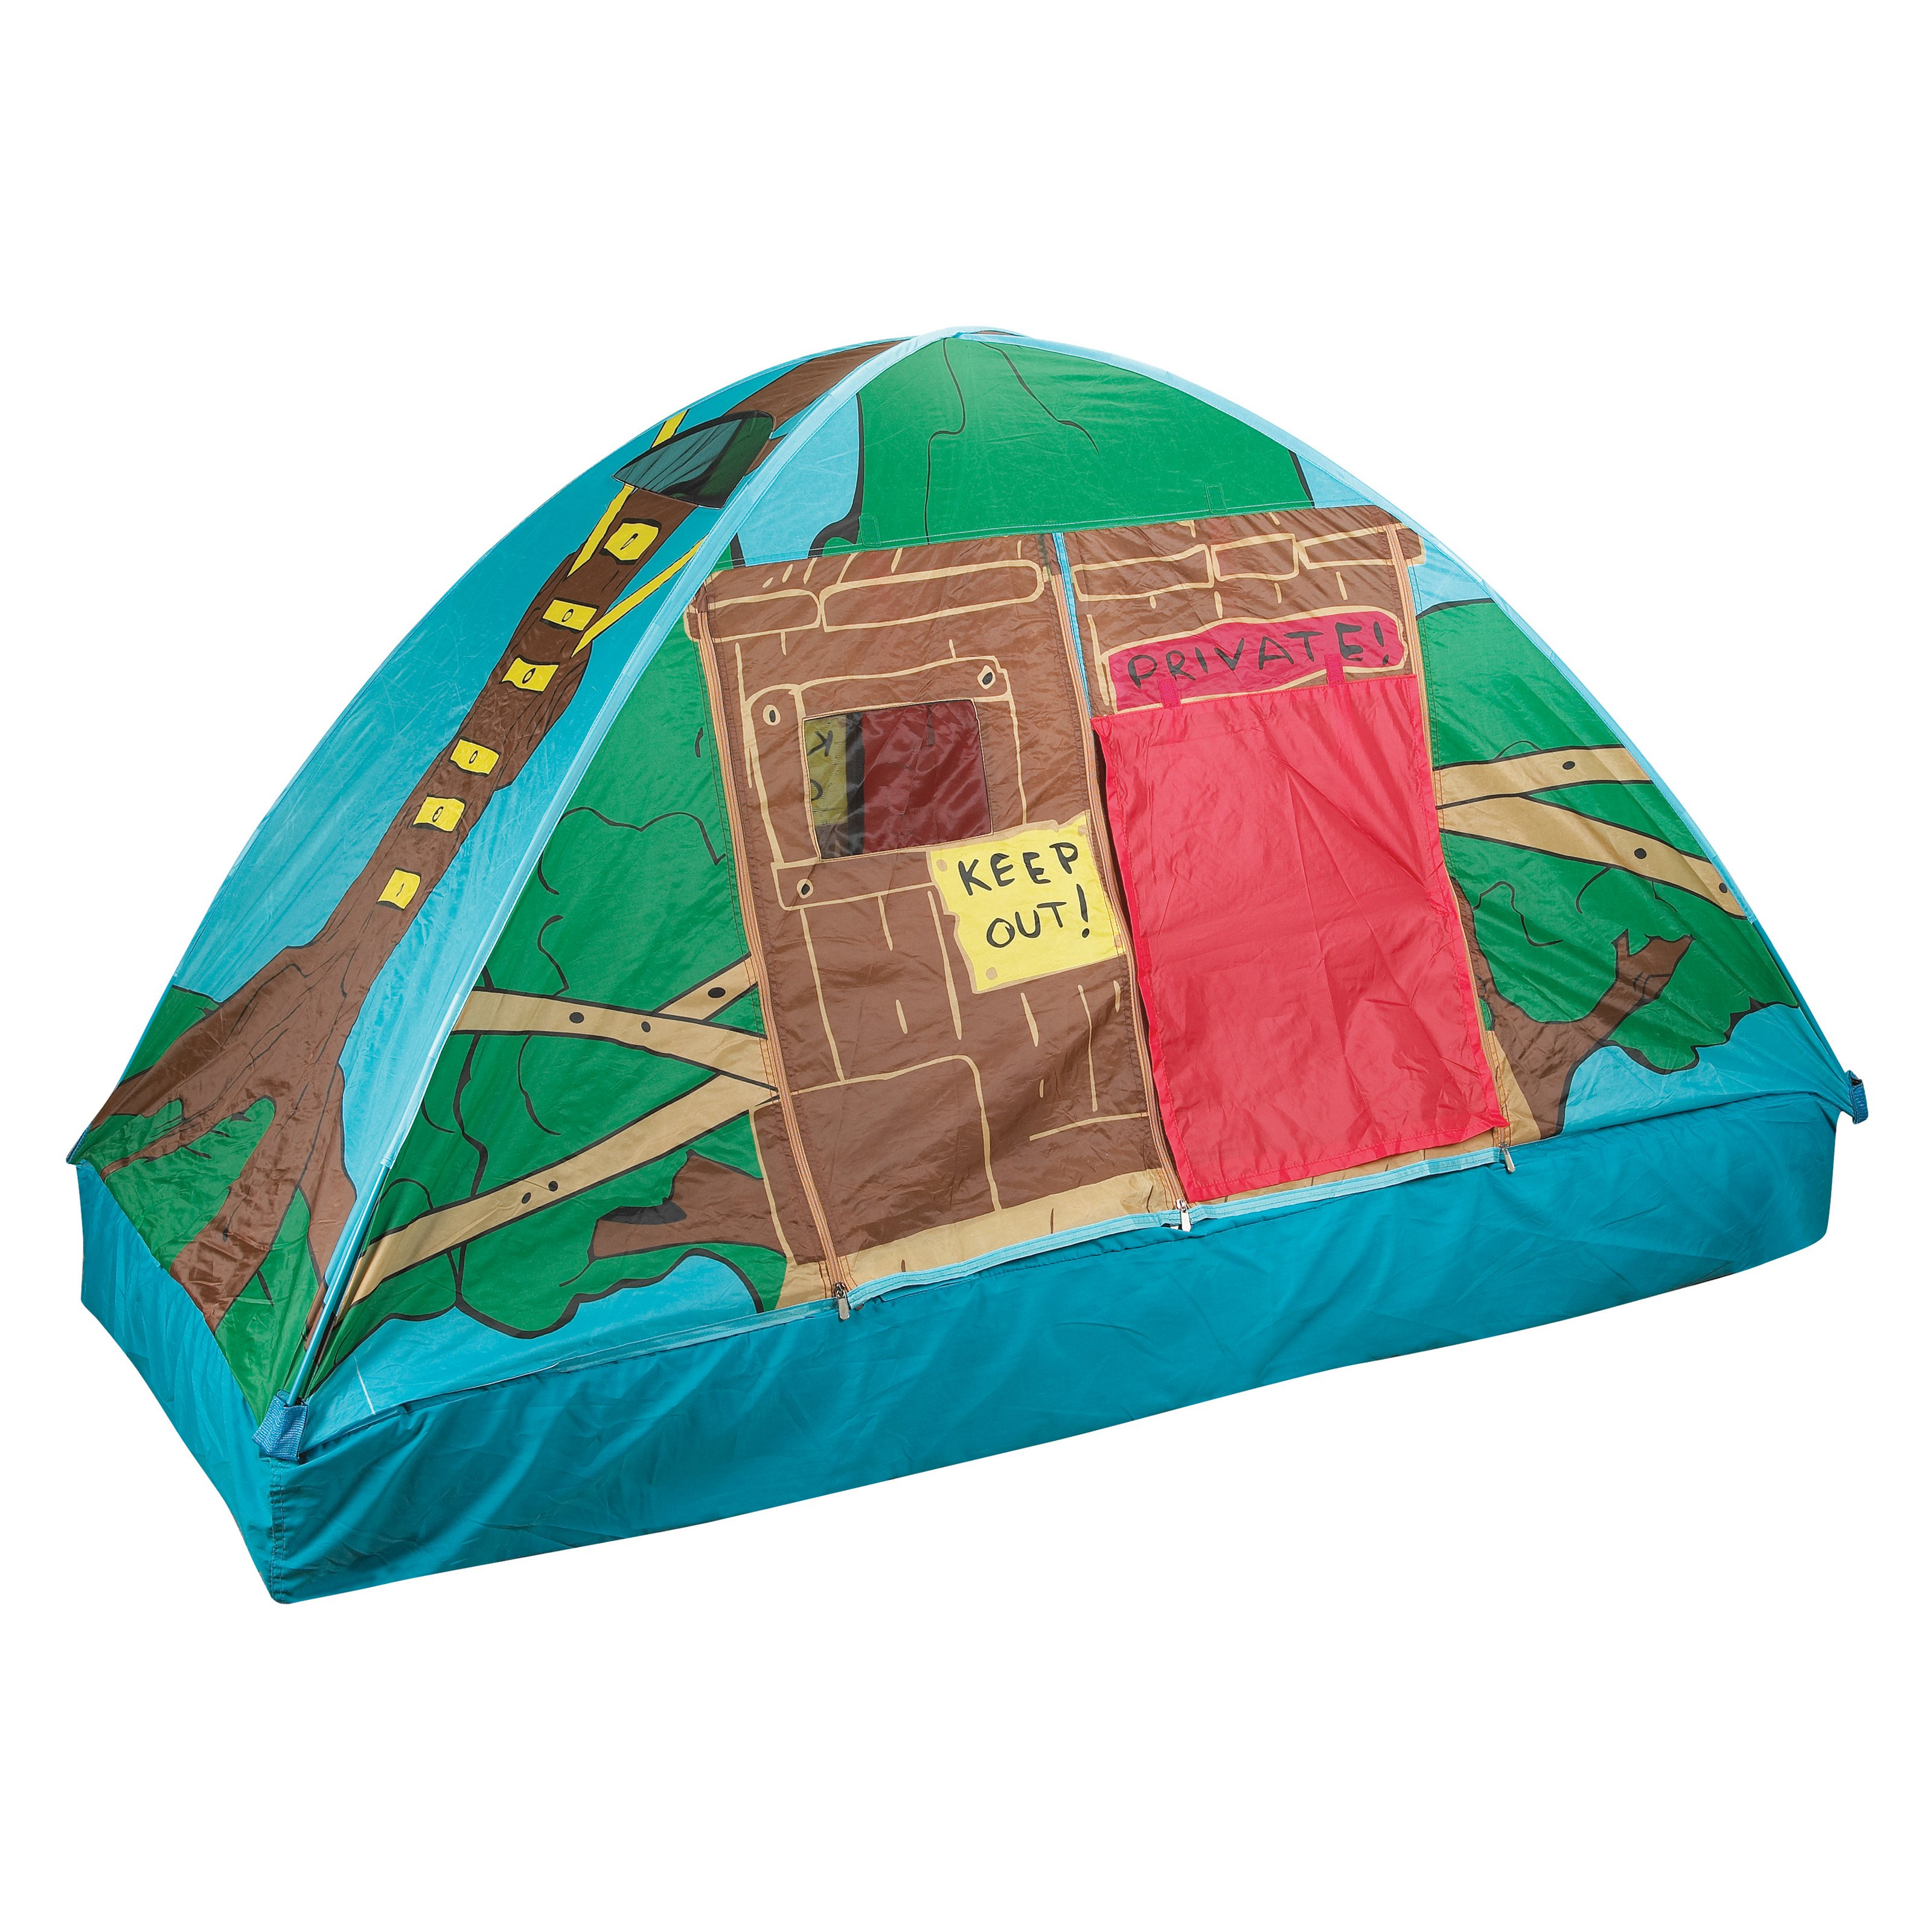 Twin Bed Tents For Boys Amp Pacific Play Tents Cottage Bed